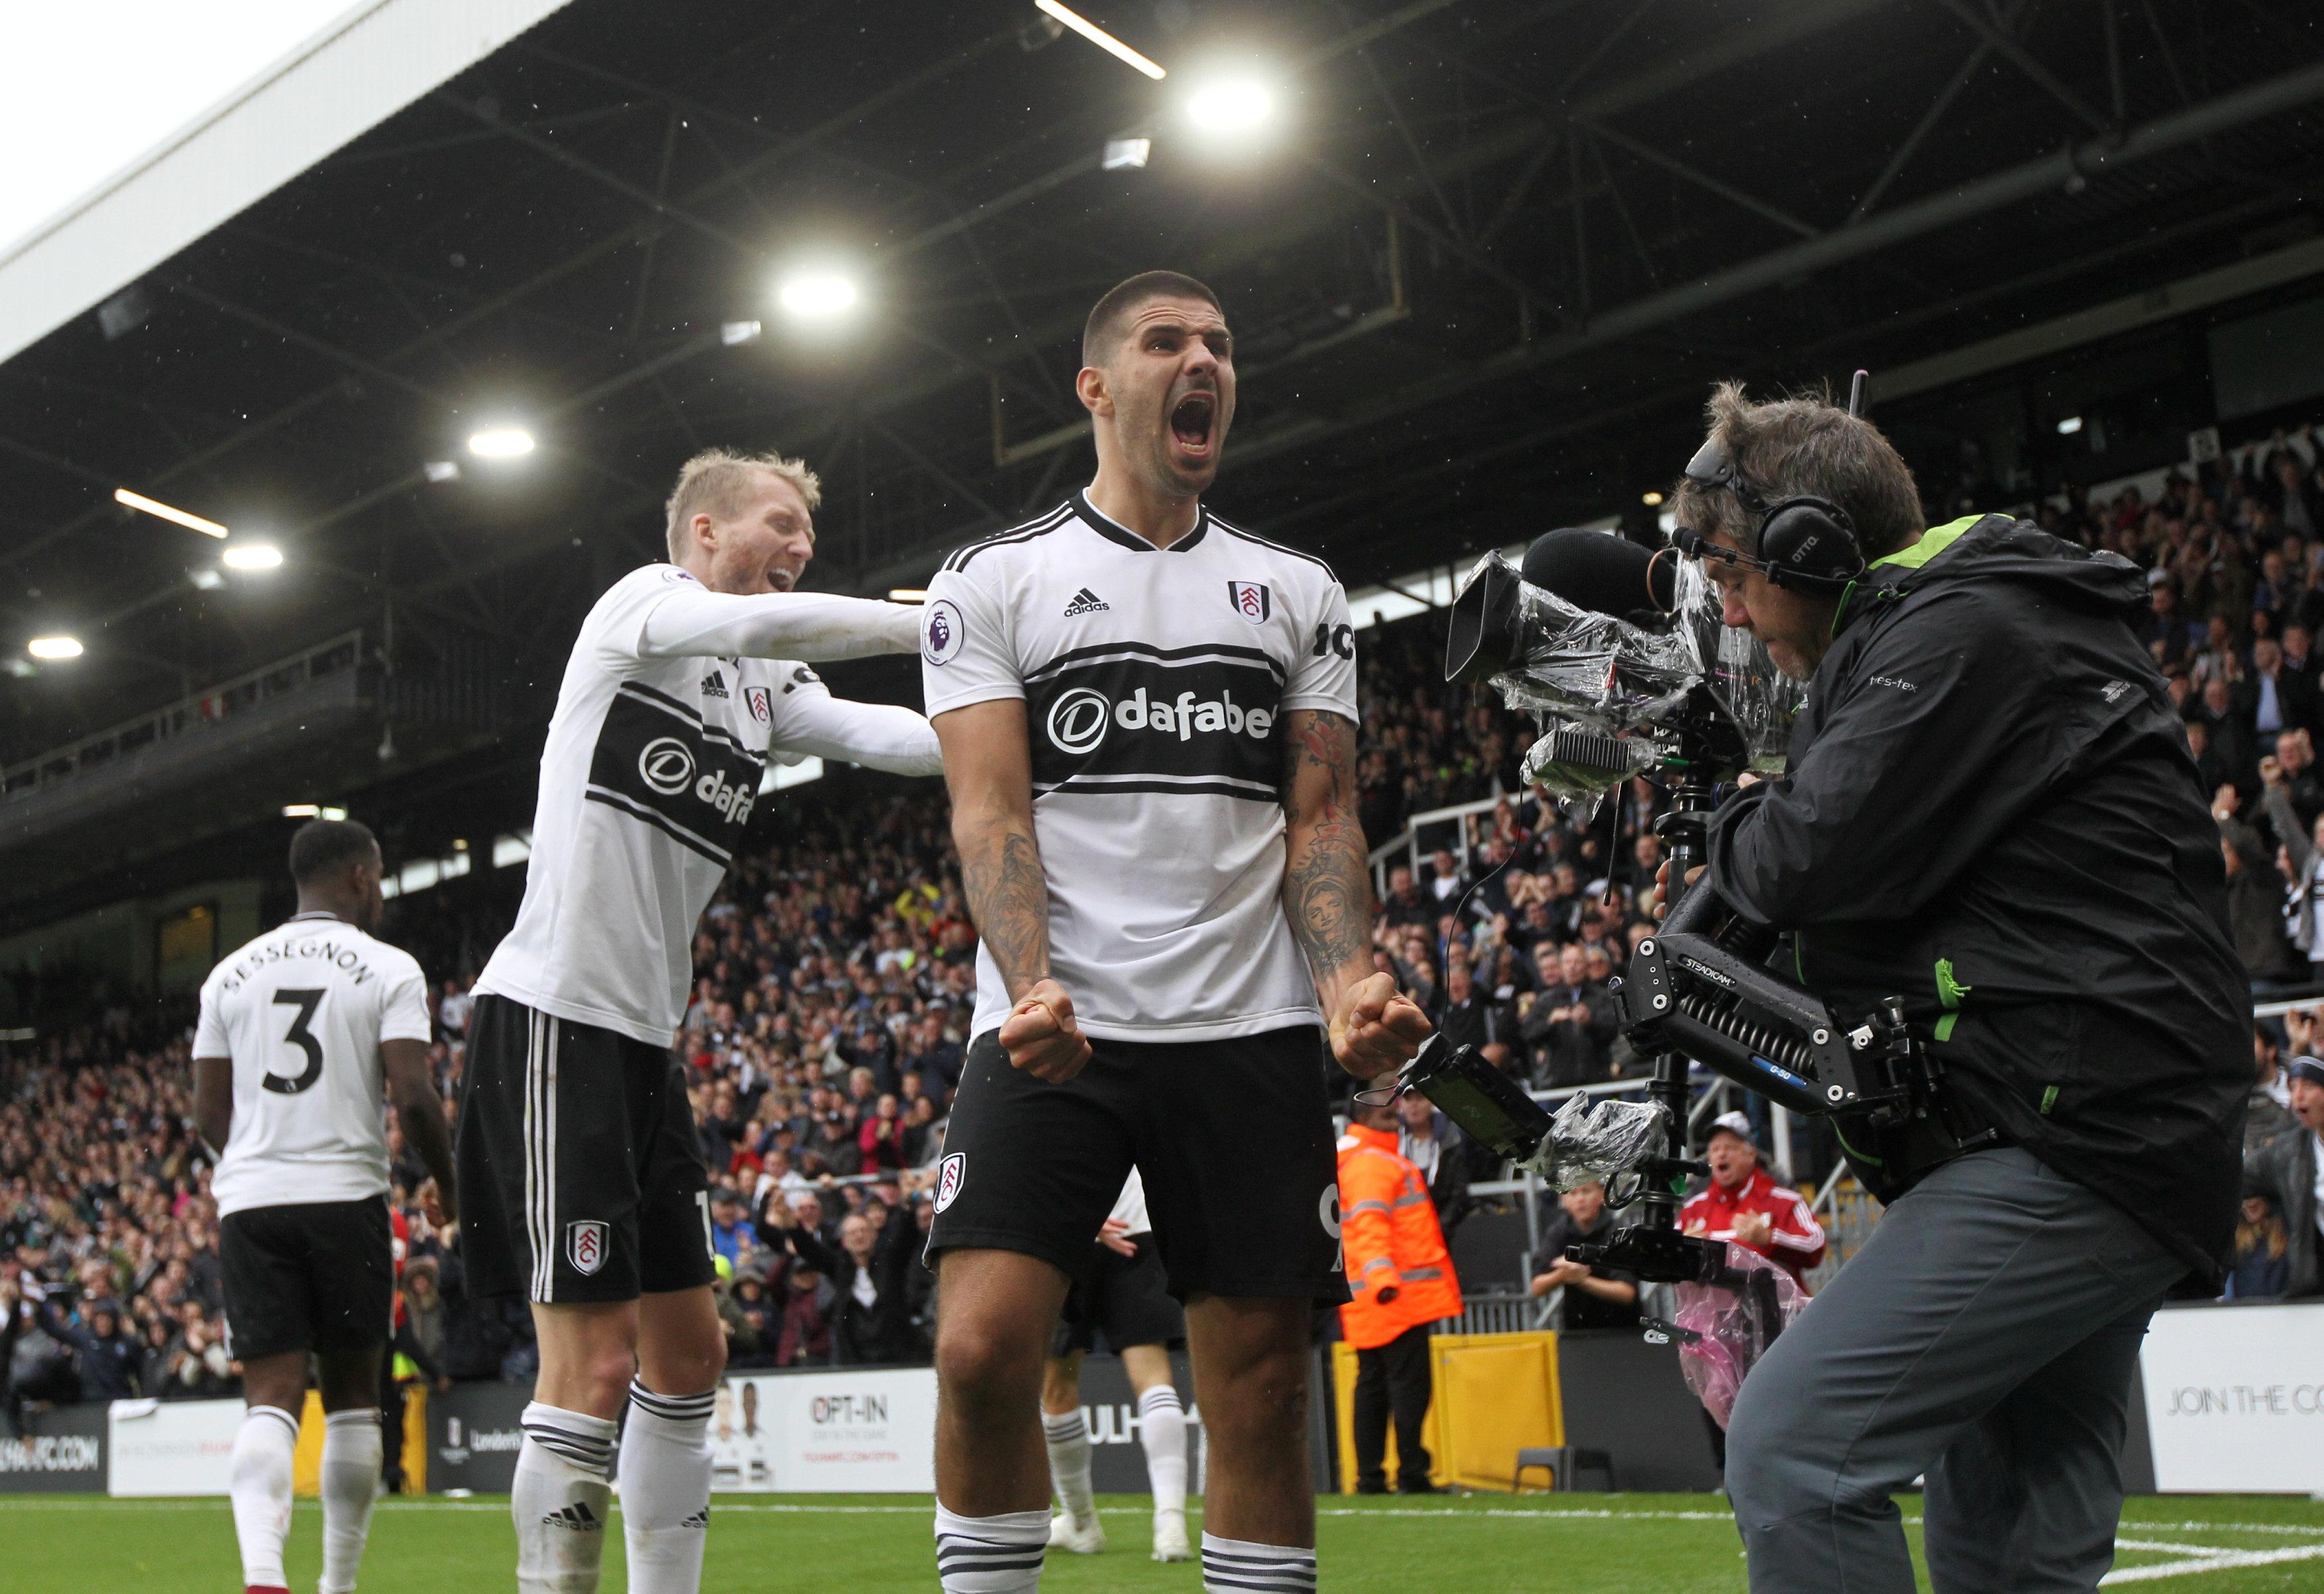 Mitrovic Wants To Build On Anfield Showing